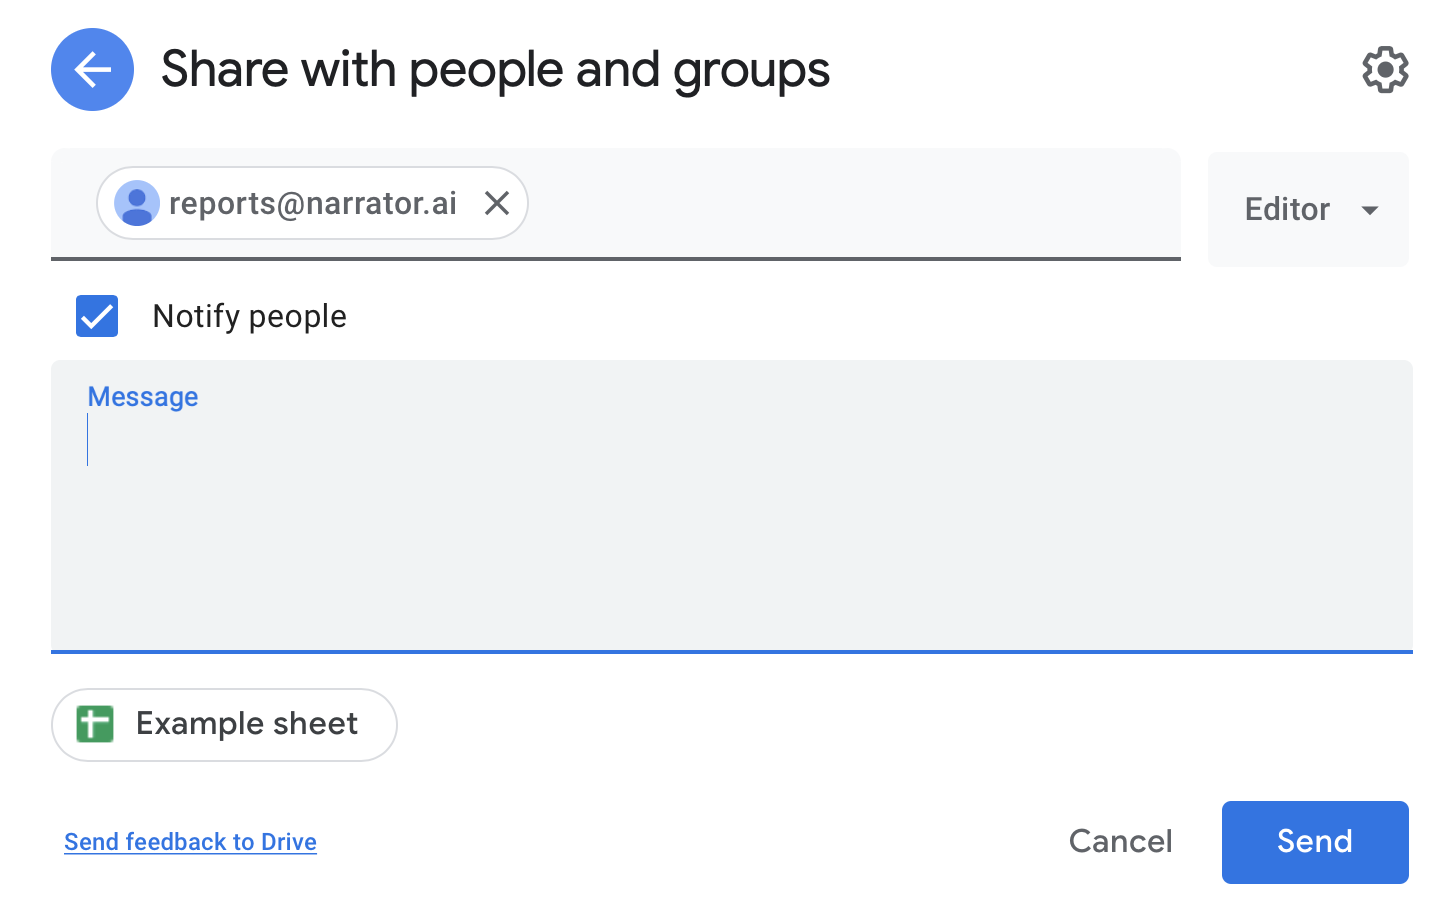 Don't forget to share the google sheet with reports@narrator.ai